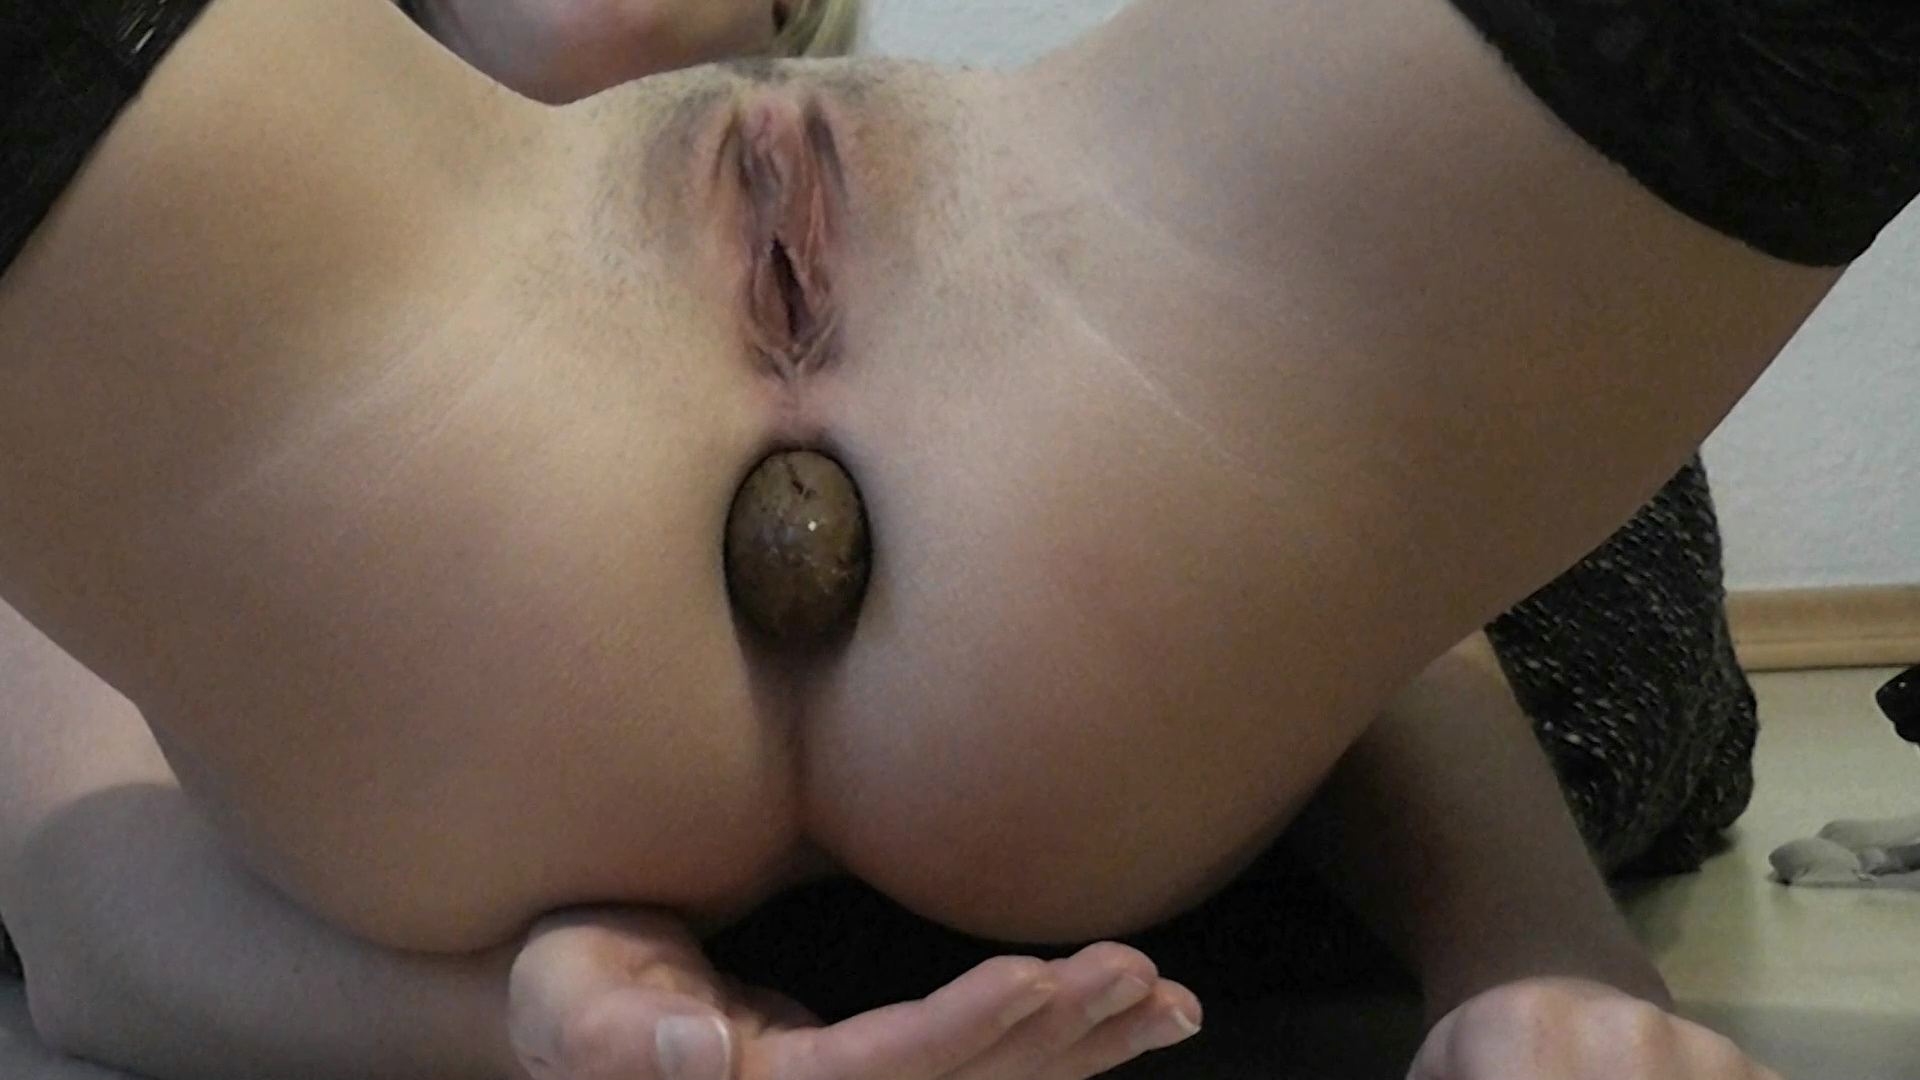 MiaRoxxx - I catched my turd!